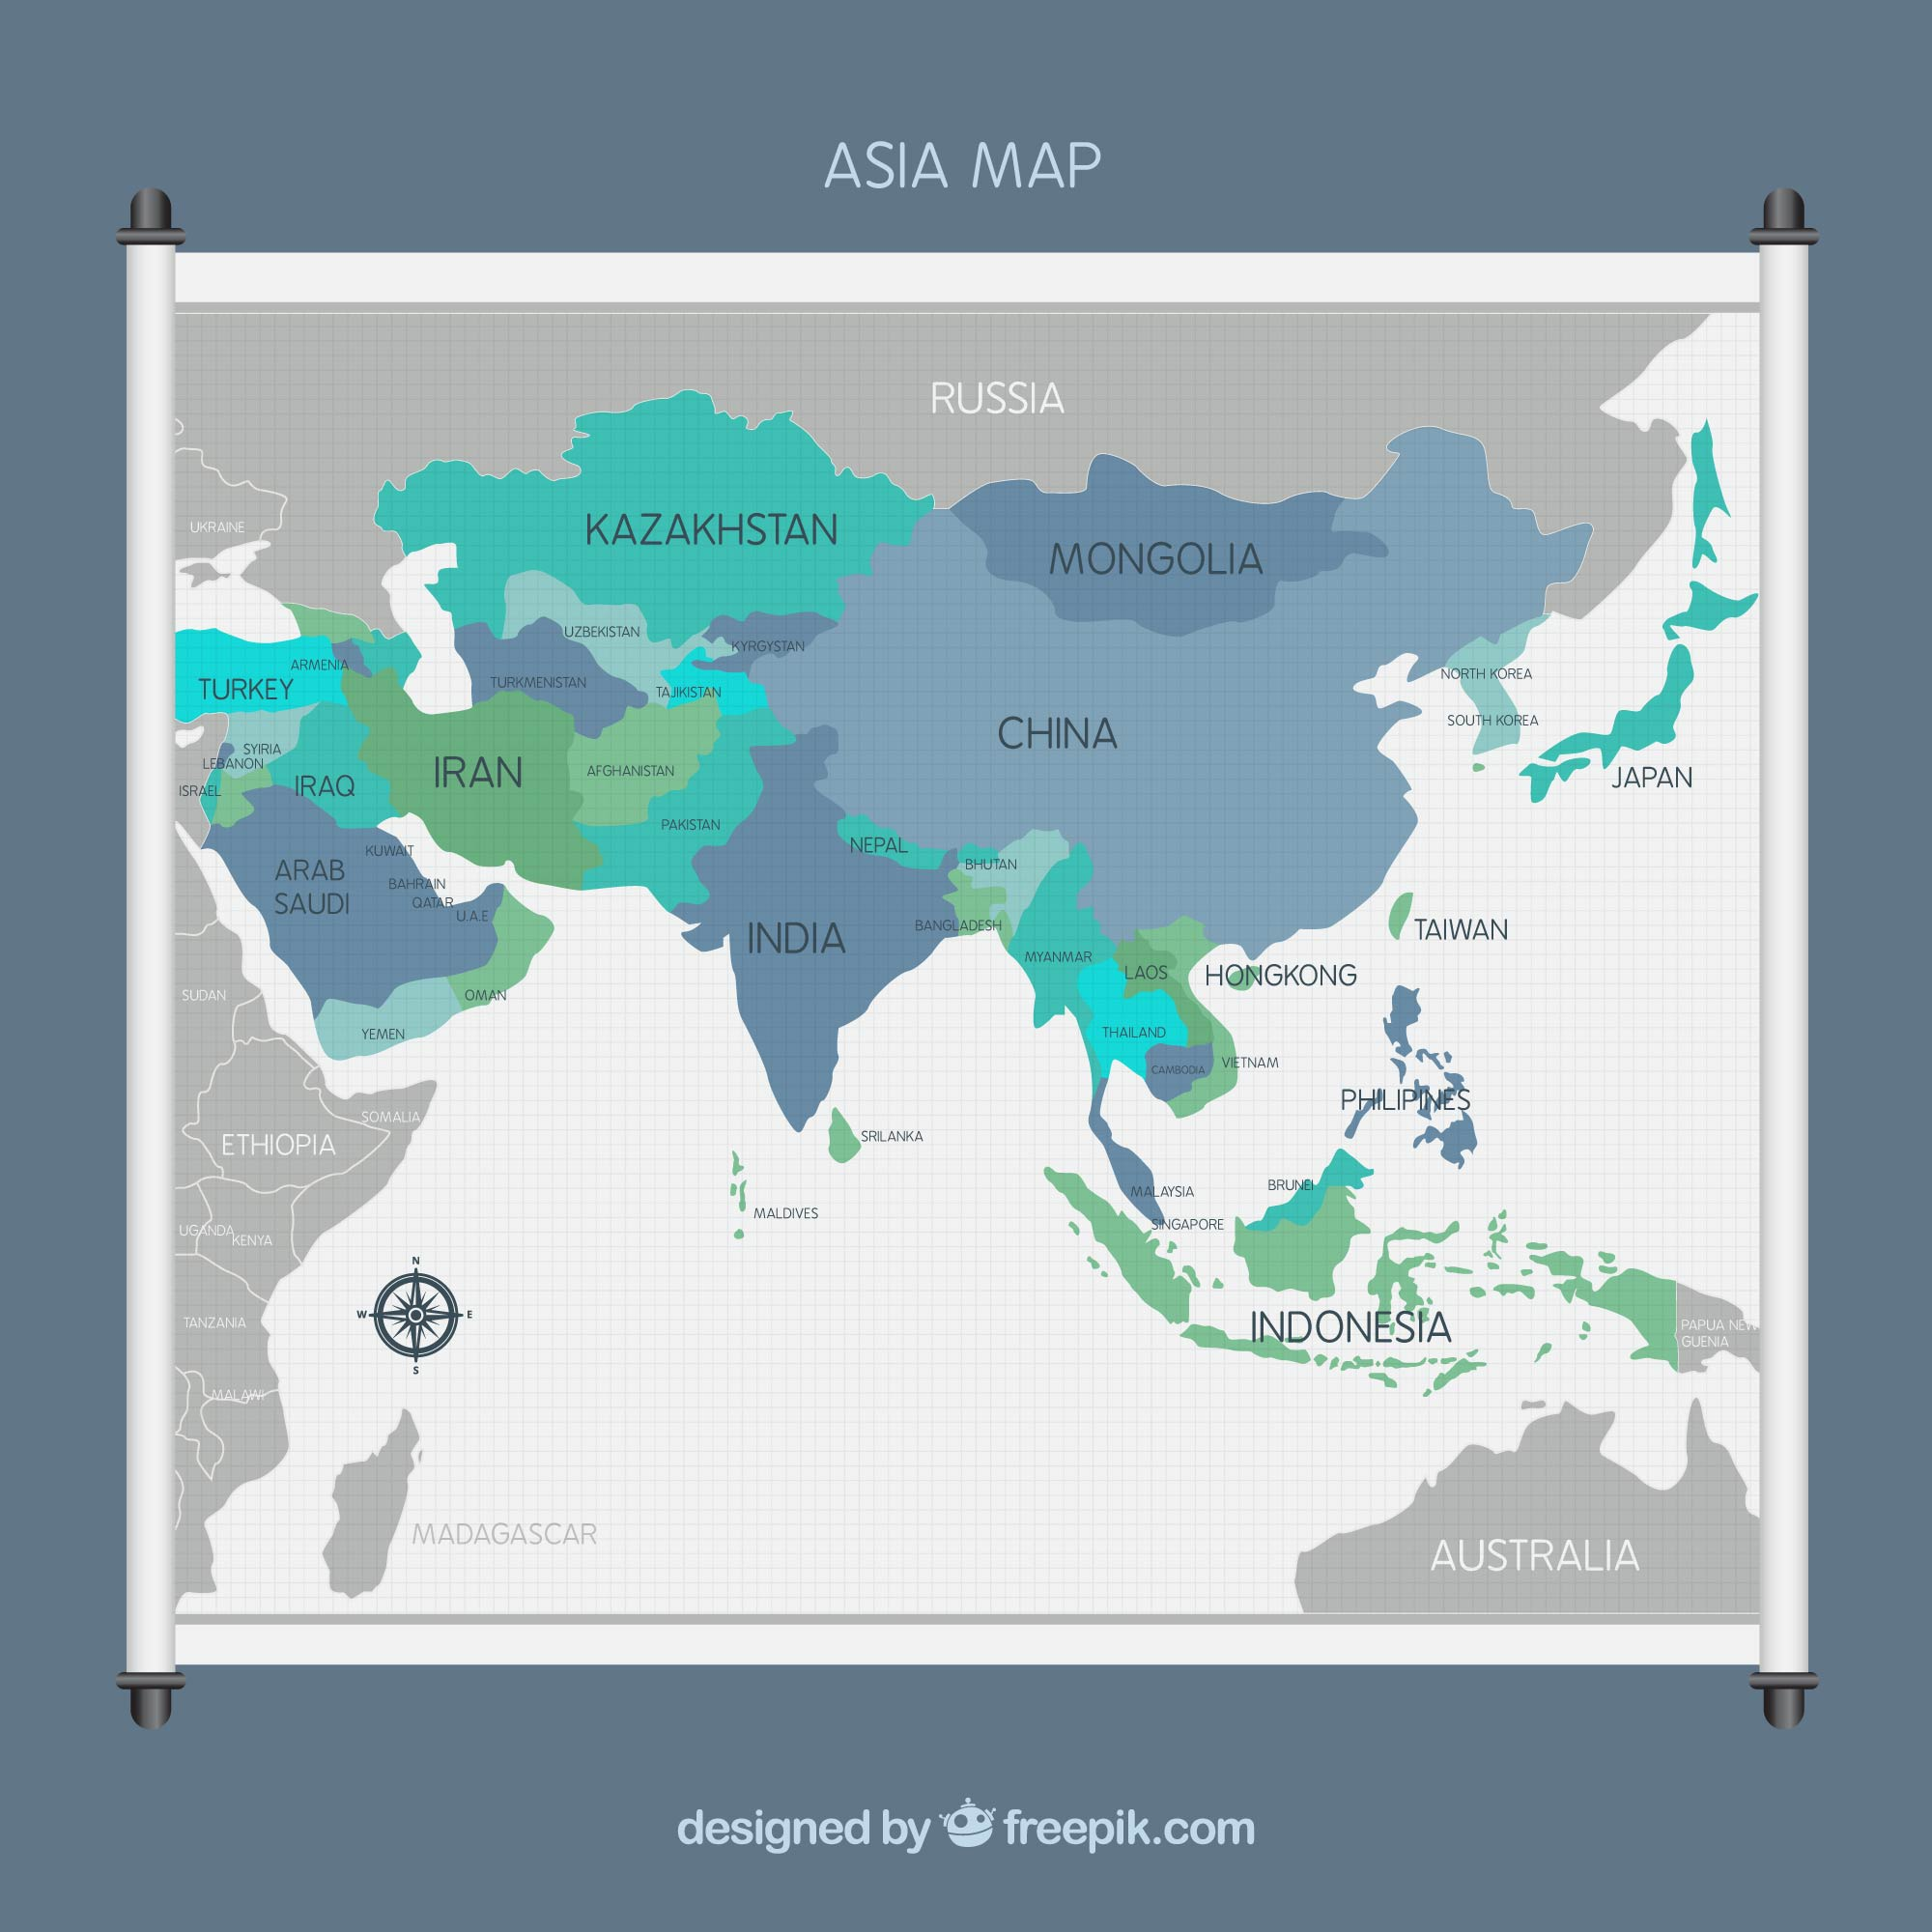 Asia map background in flat style